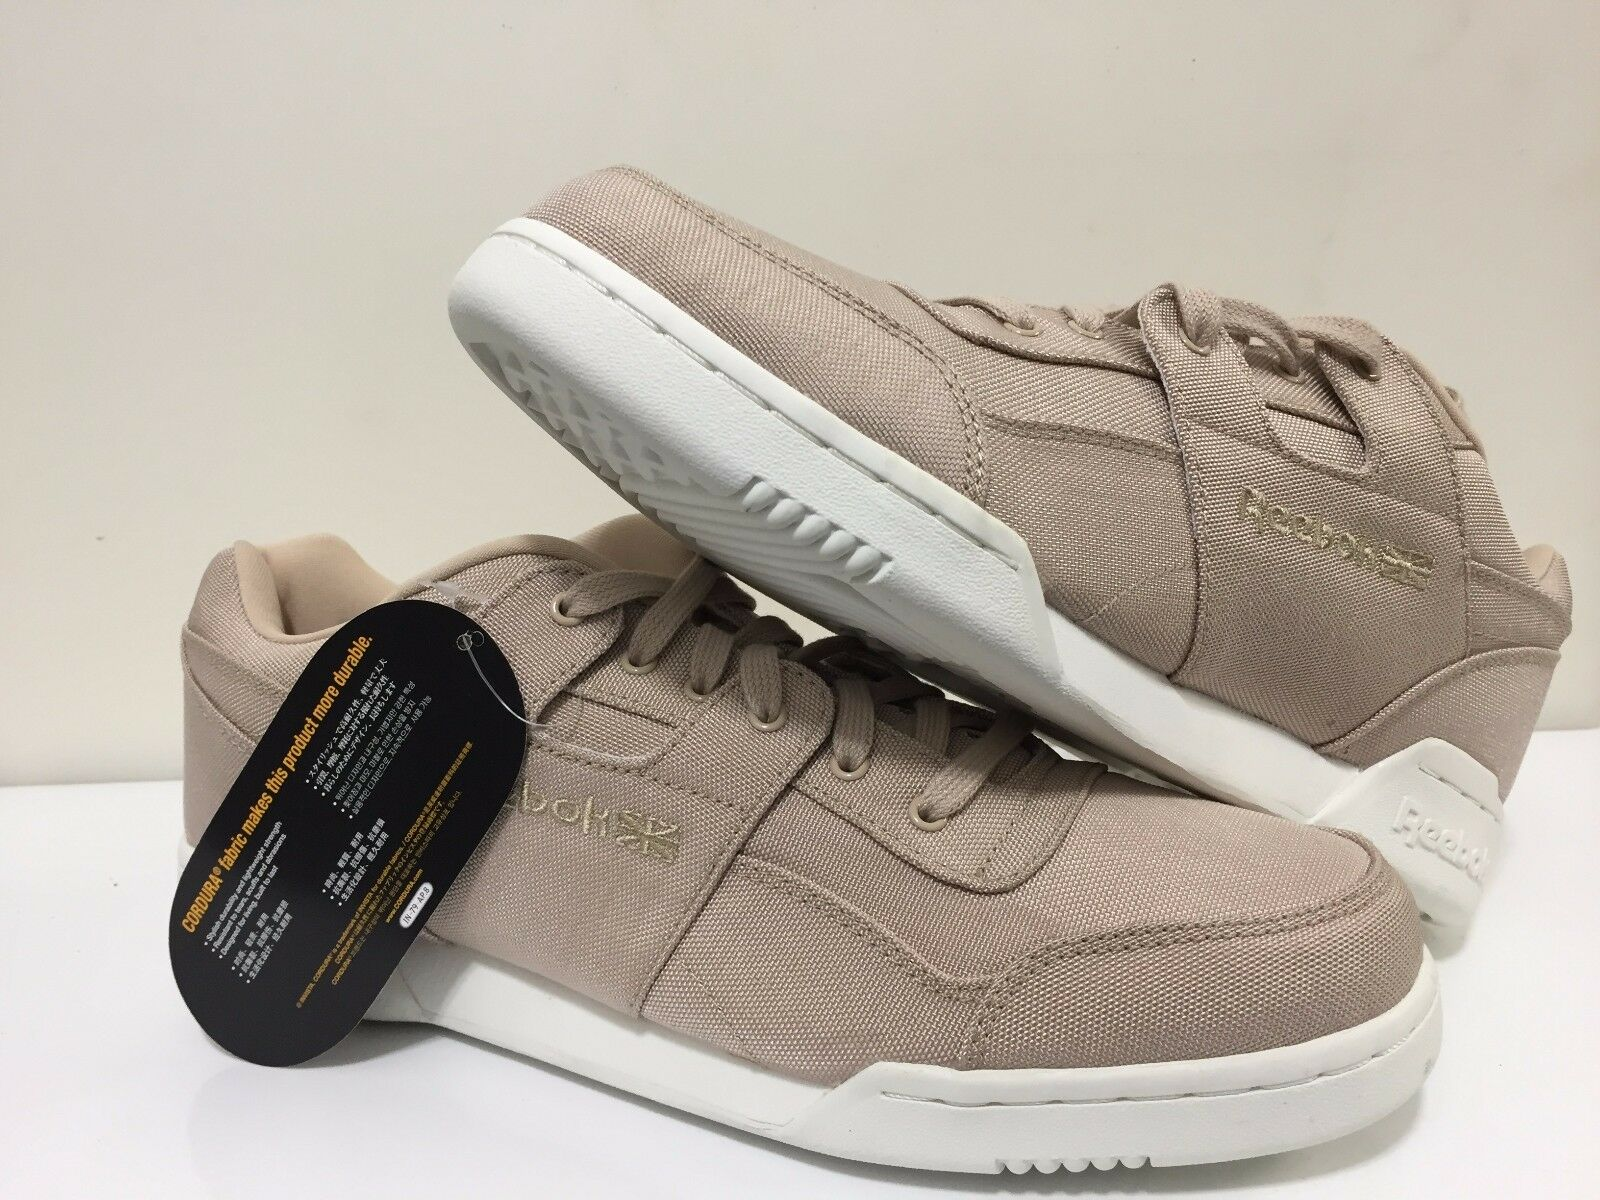 522240d88ad Reebok Workout Plus Cordura 1 of 1Only 1 available ...